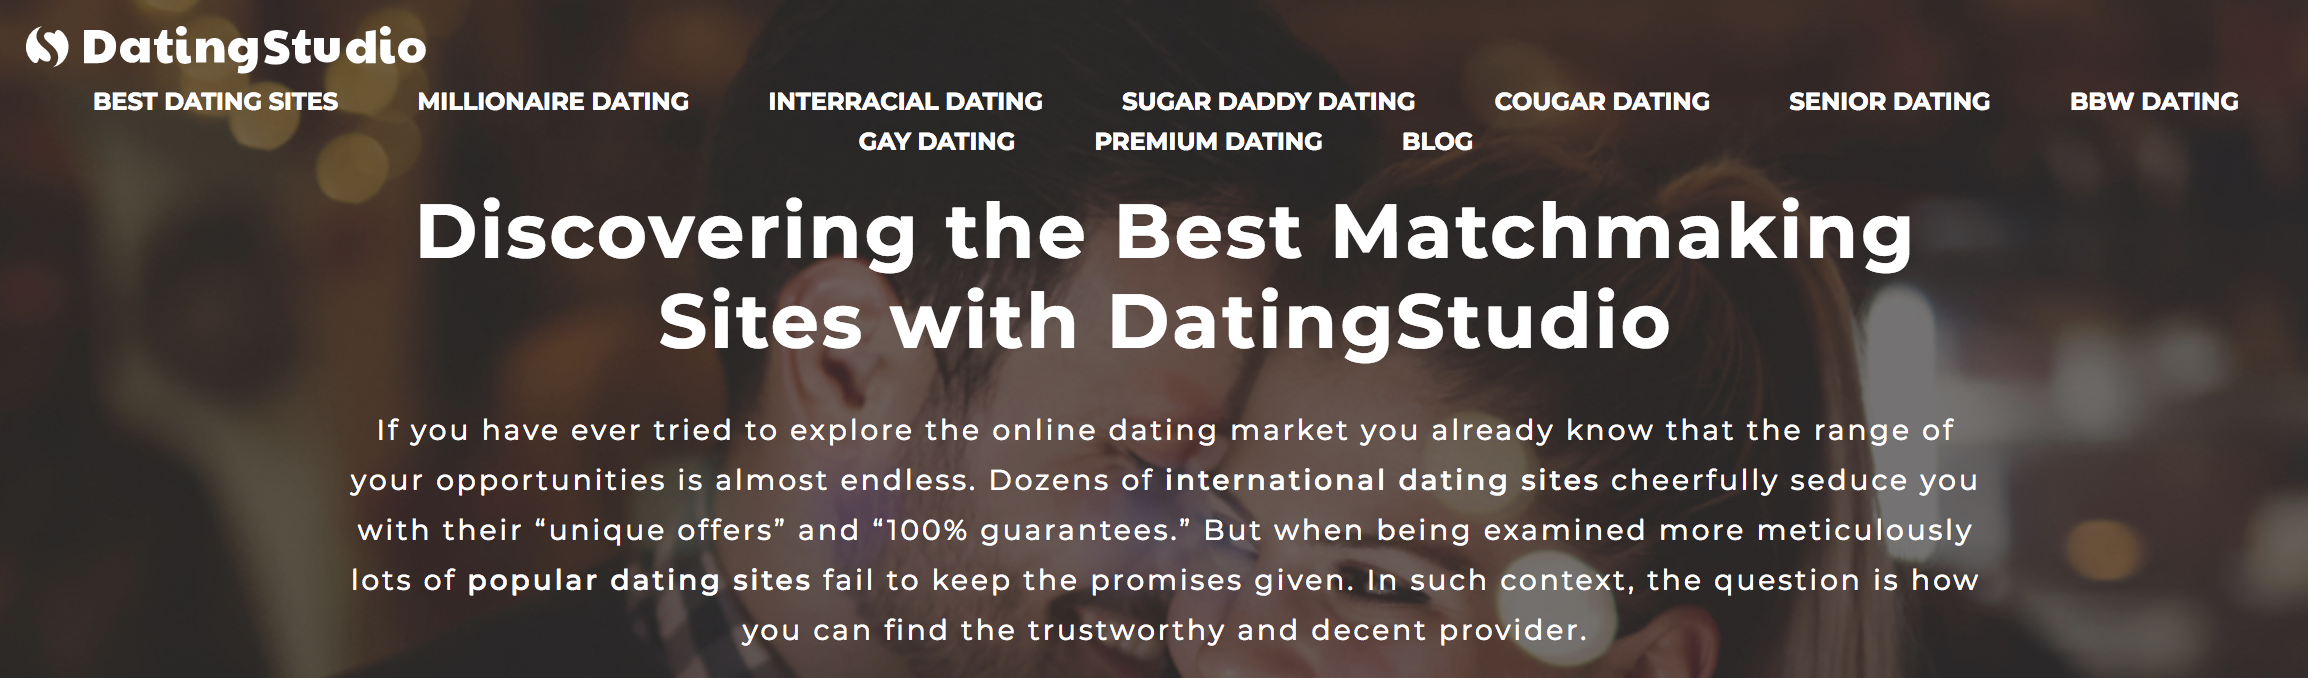 best rated online dating services